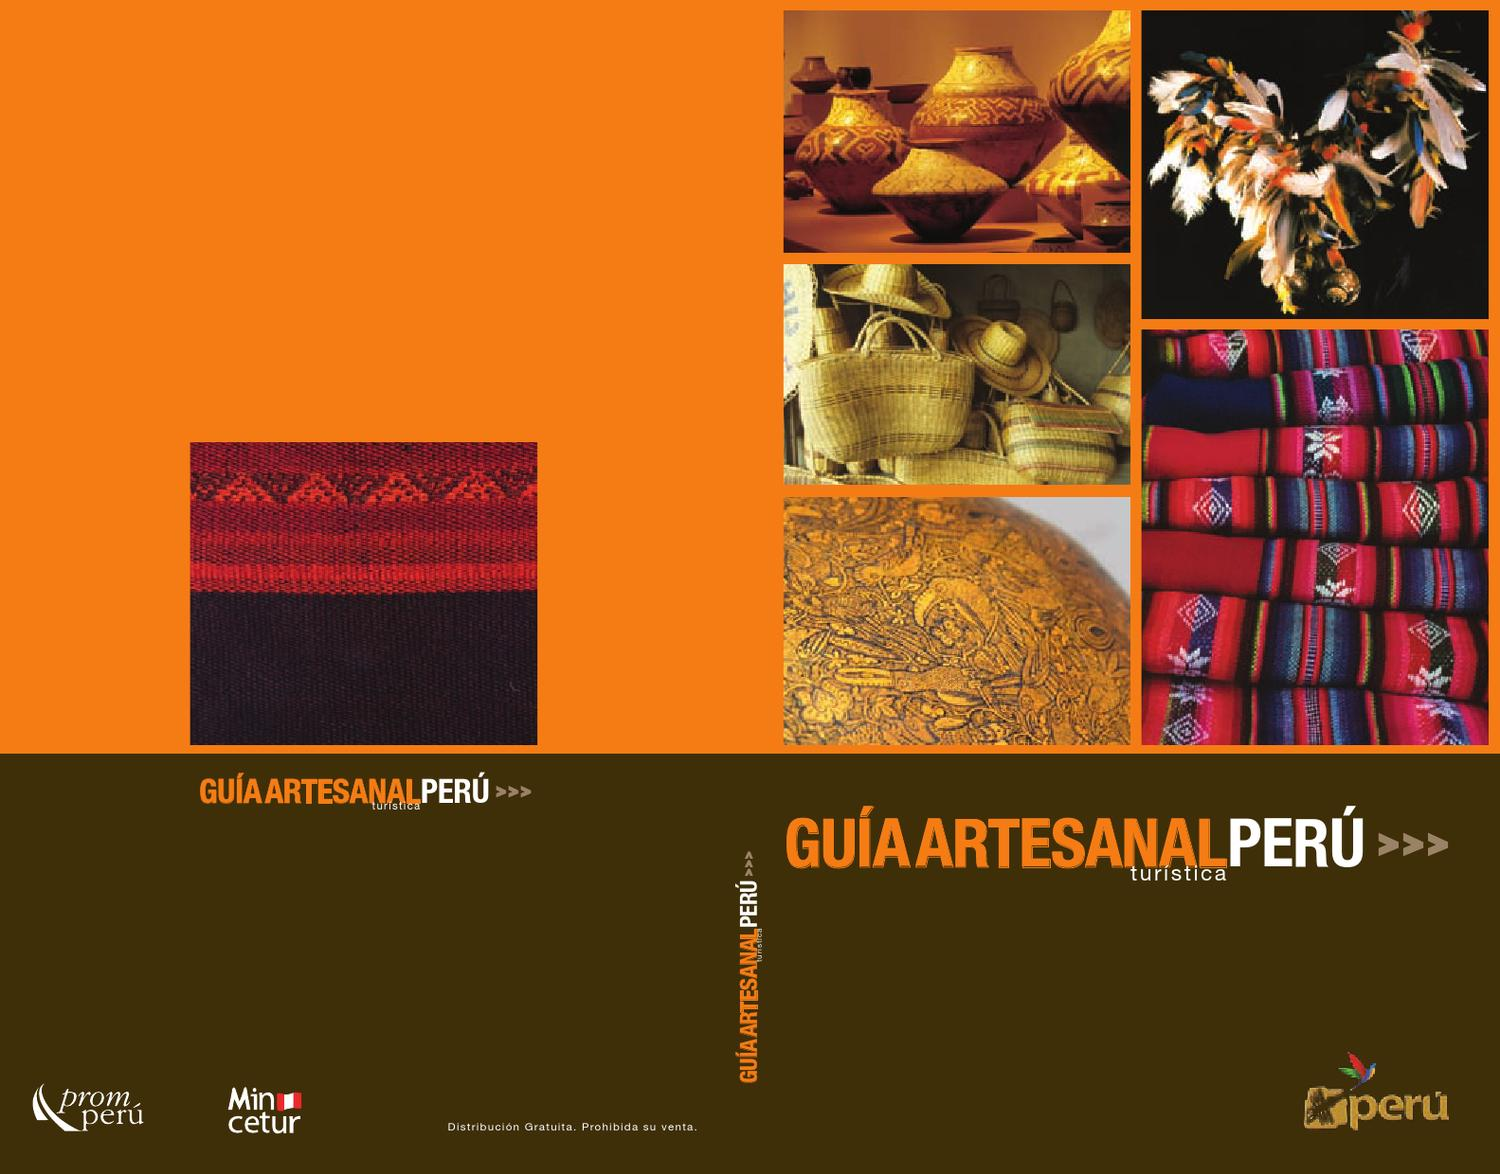 guiartesanal by Visit Peru - Issuu 66ab985e4cd